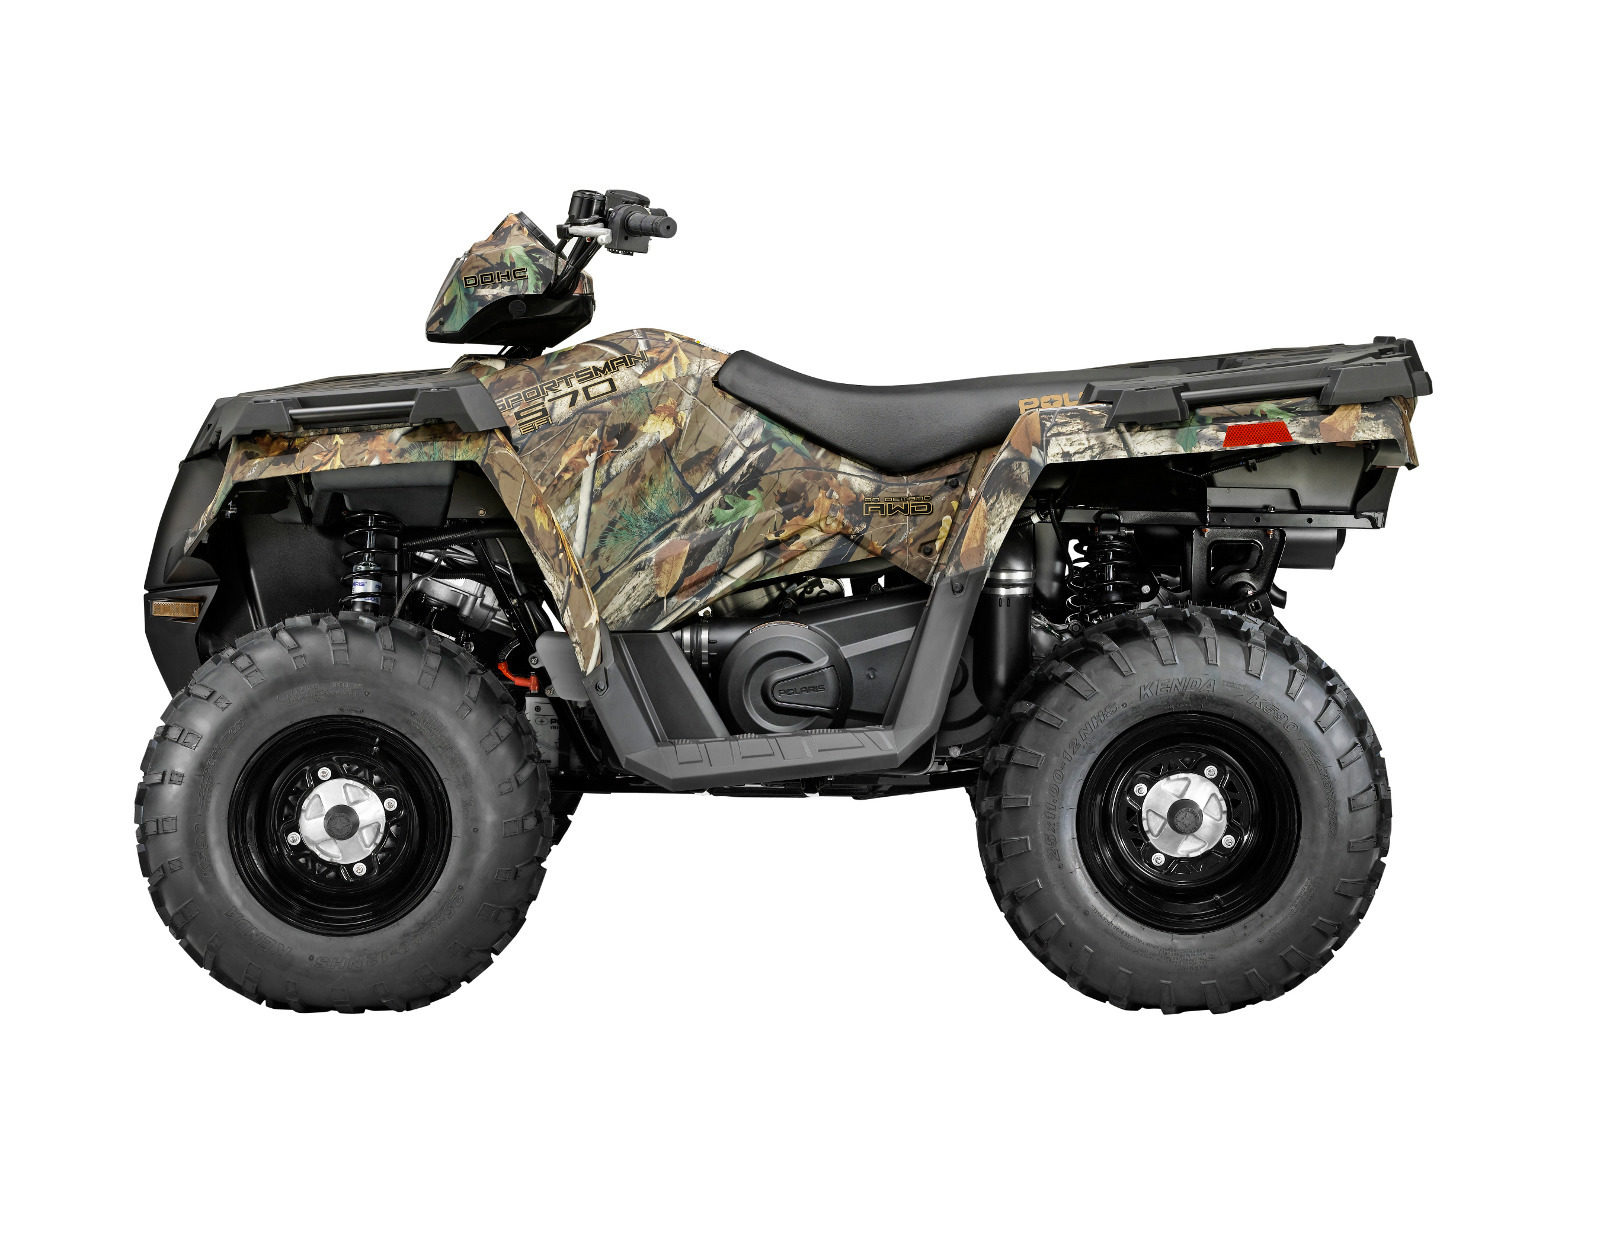 D Just Bought Polaris Sportsman Having Starter Problems in addition A Wk further Fuel Pump Wiring Diagram On Ford Taurus Of Ford Taurus Fuel Pump Wiring Diagram in addition Hqdefault besides Maxresdefault. on polaris wiring diagram